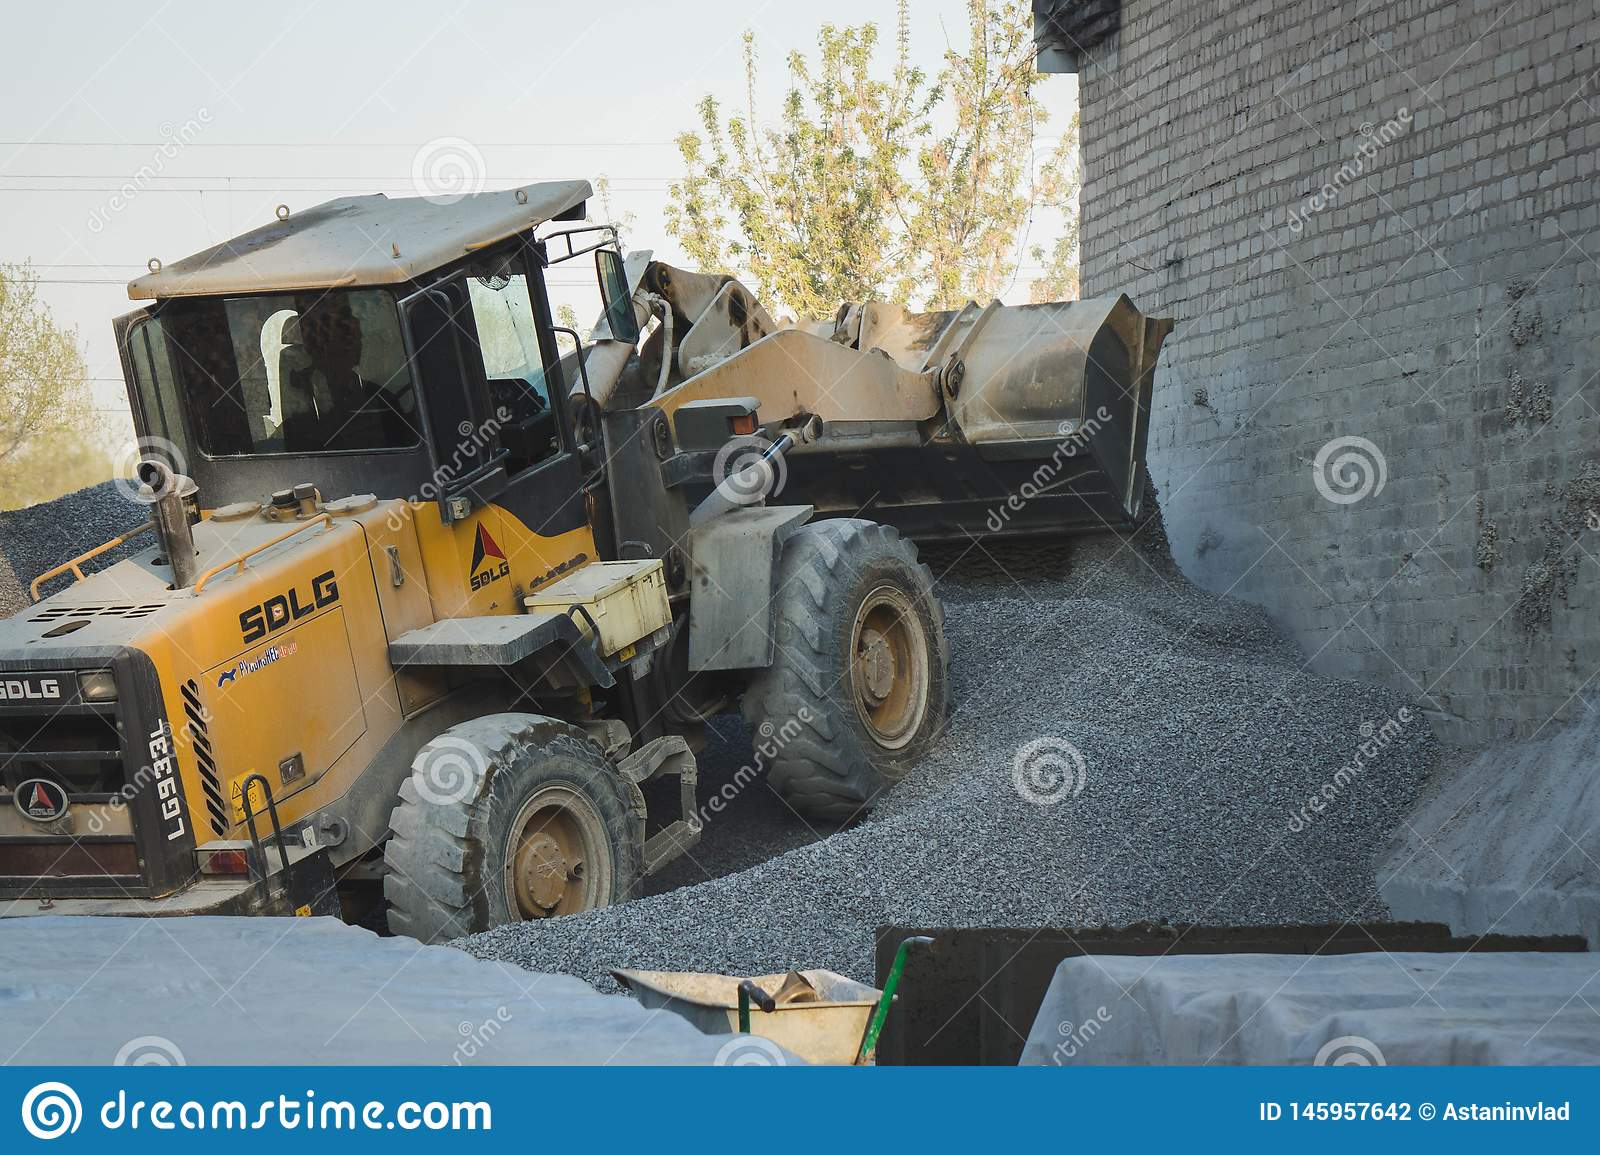 Voronezh region, Russia, april, 25 2019. Tractor loads crushed stone in the production of concrete. Yellow tractor loader running